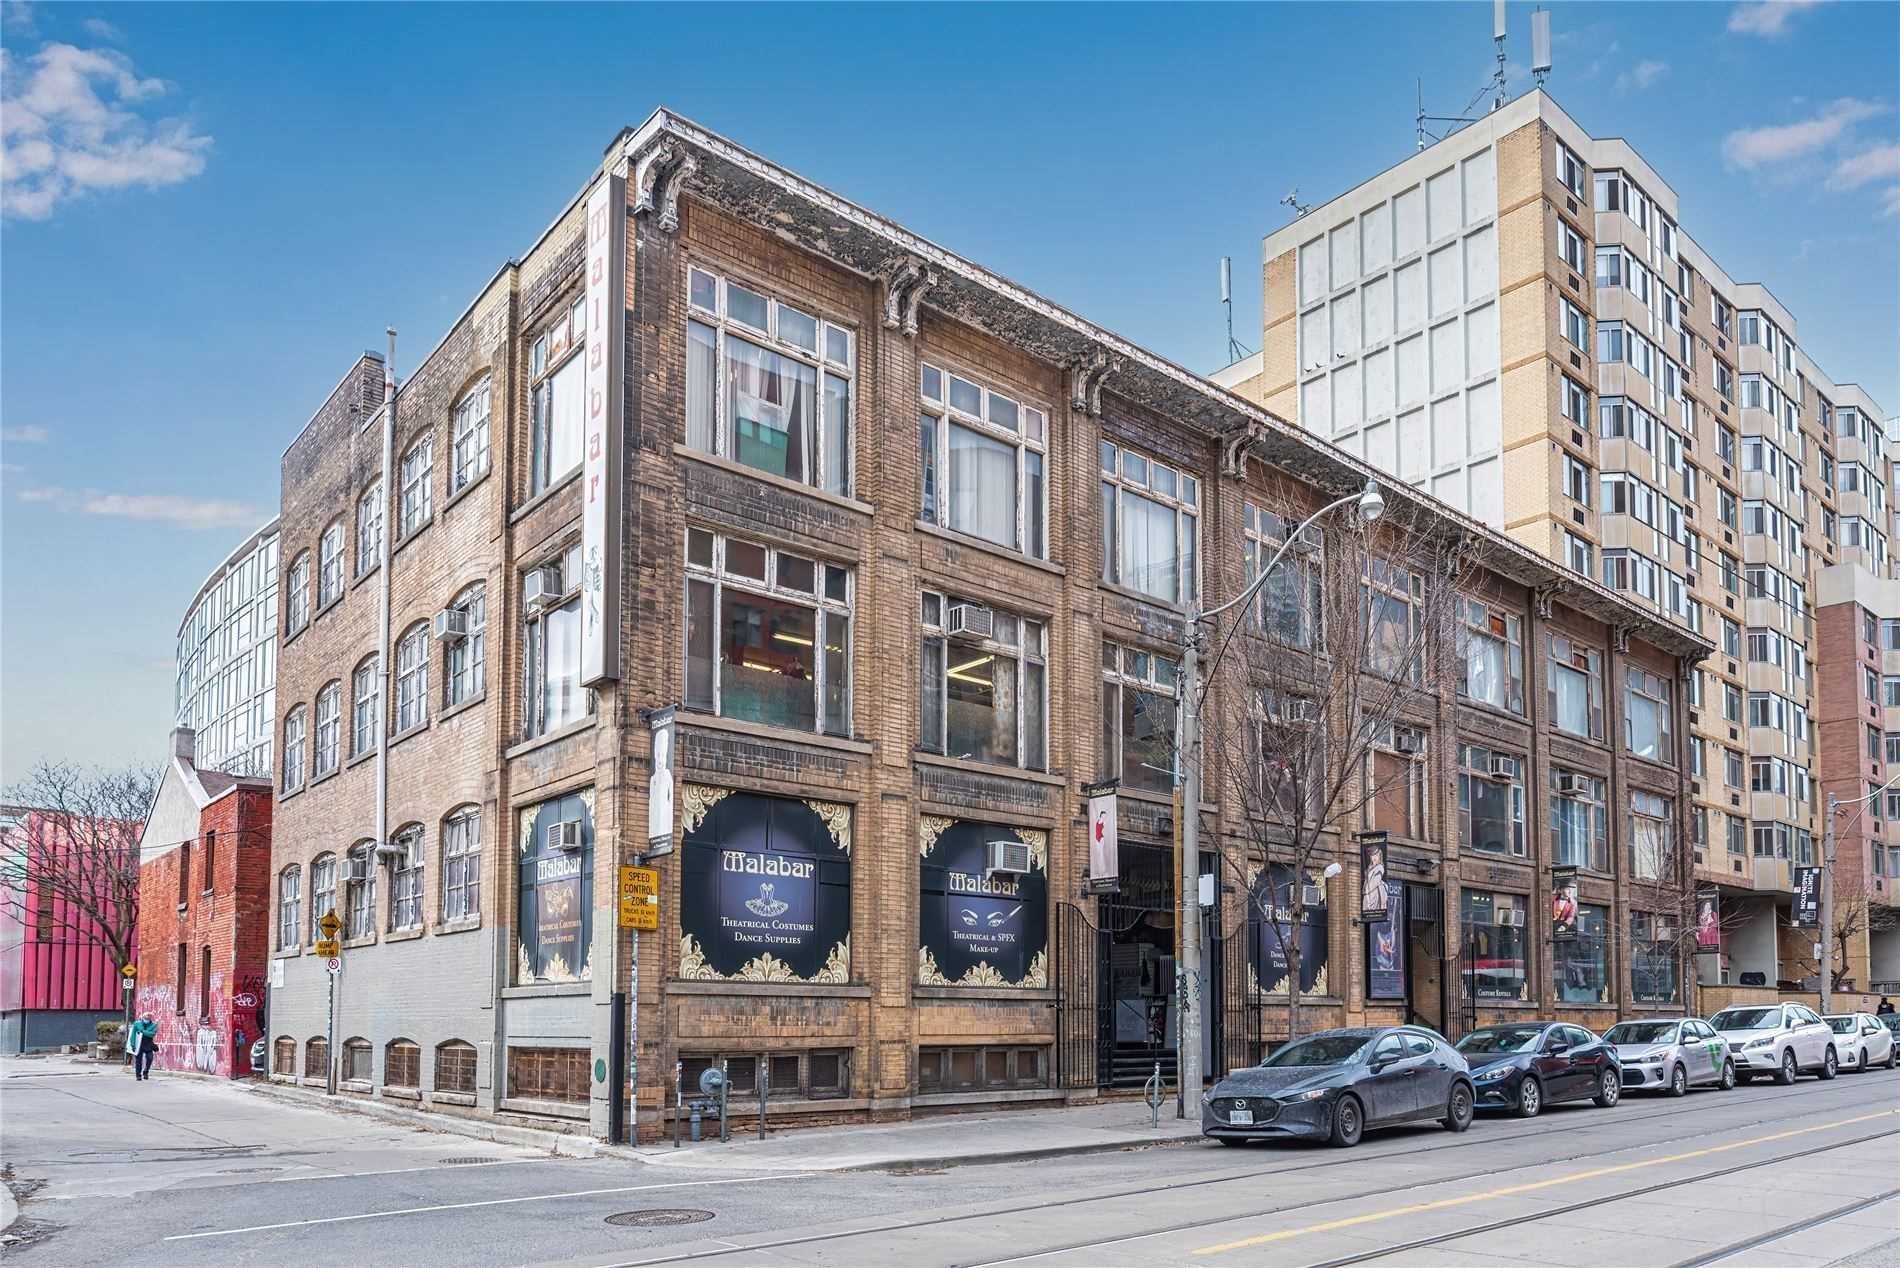 Main Photo: 14 Mccaul Street in Toronto: Kensington-Chinatown Property for sale (Toronto C01)  : MLS®# C5155685